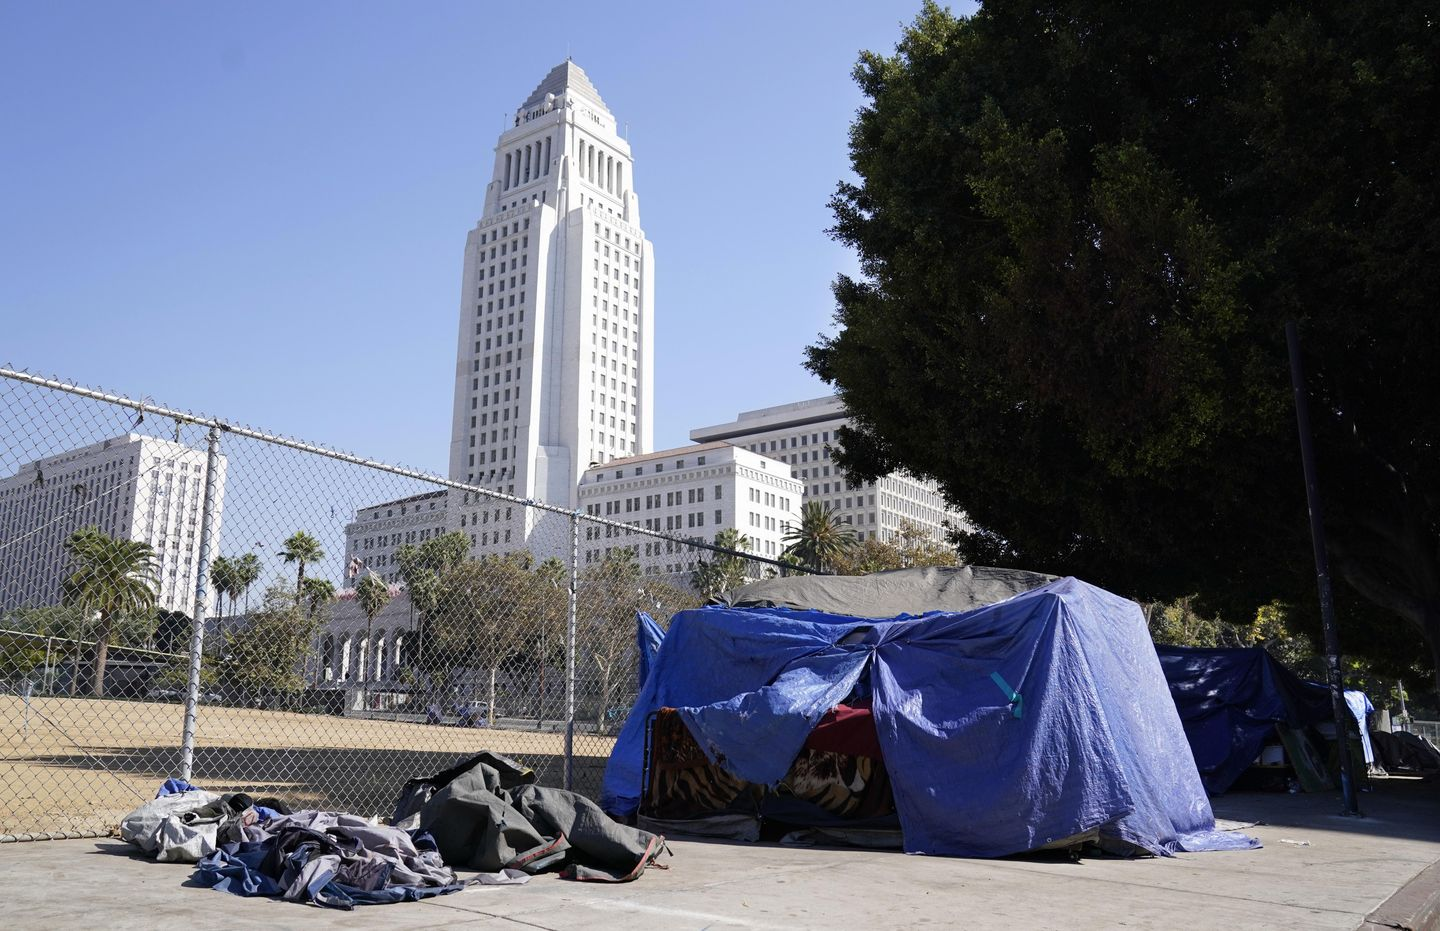 LA homeless spending could near $1B as crisis rages